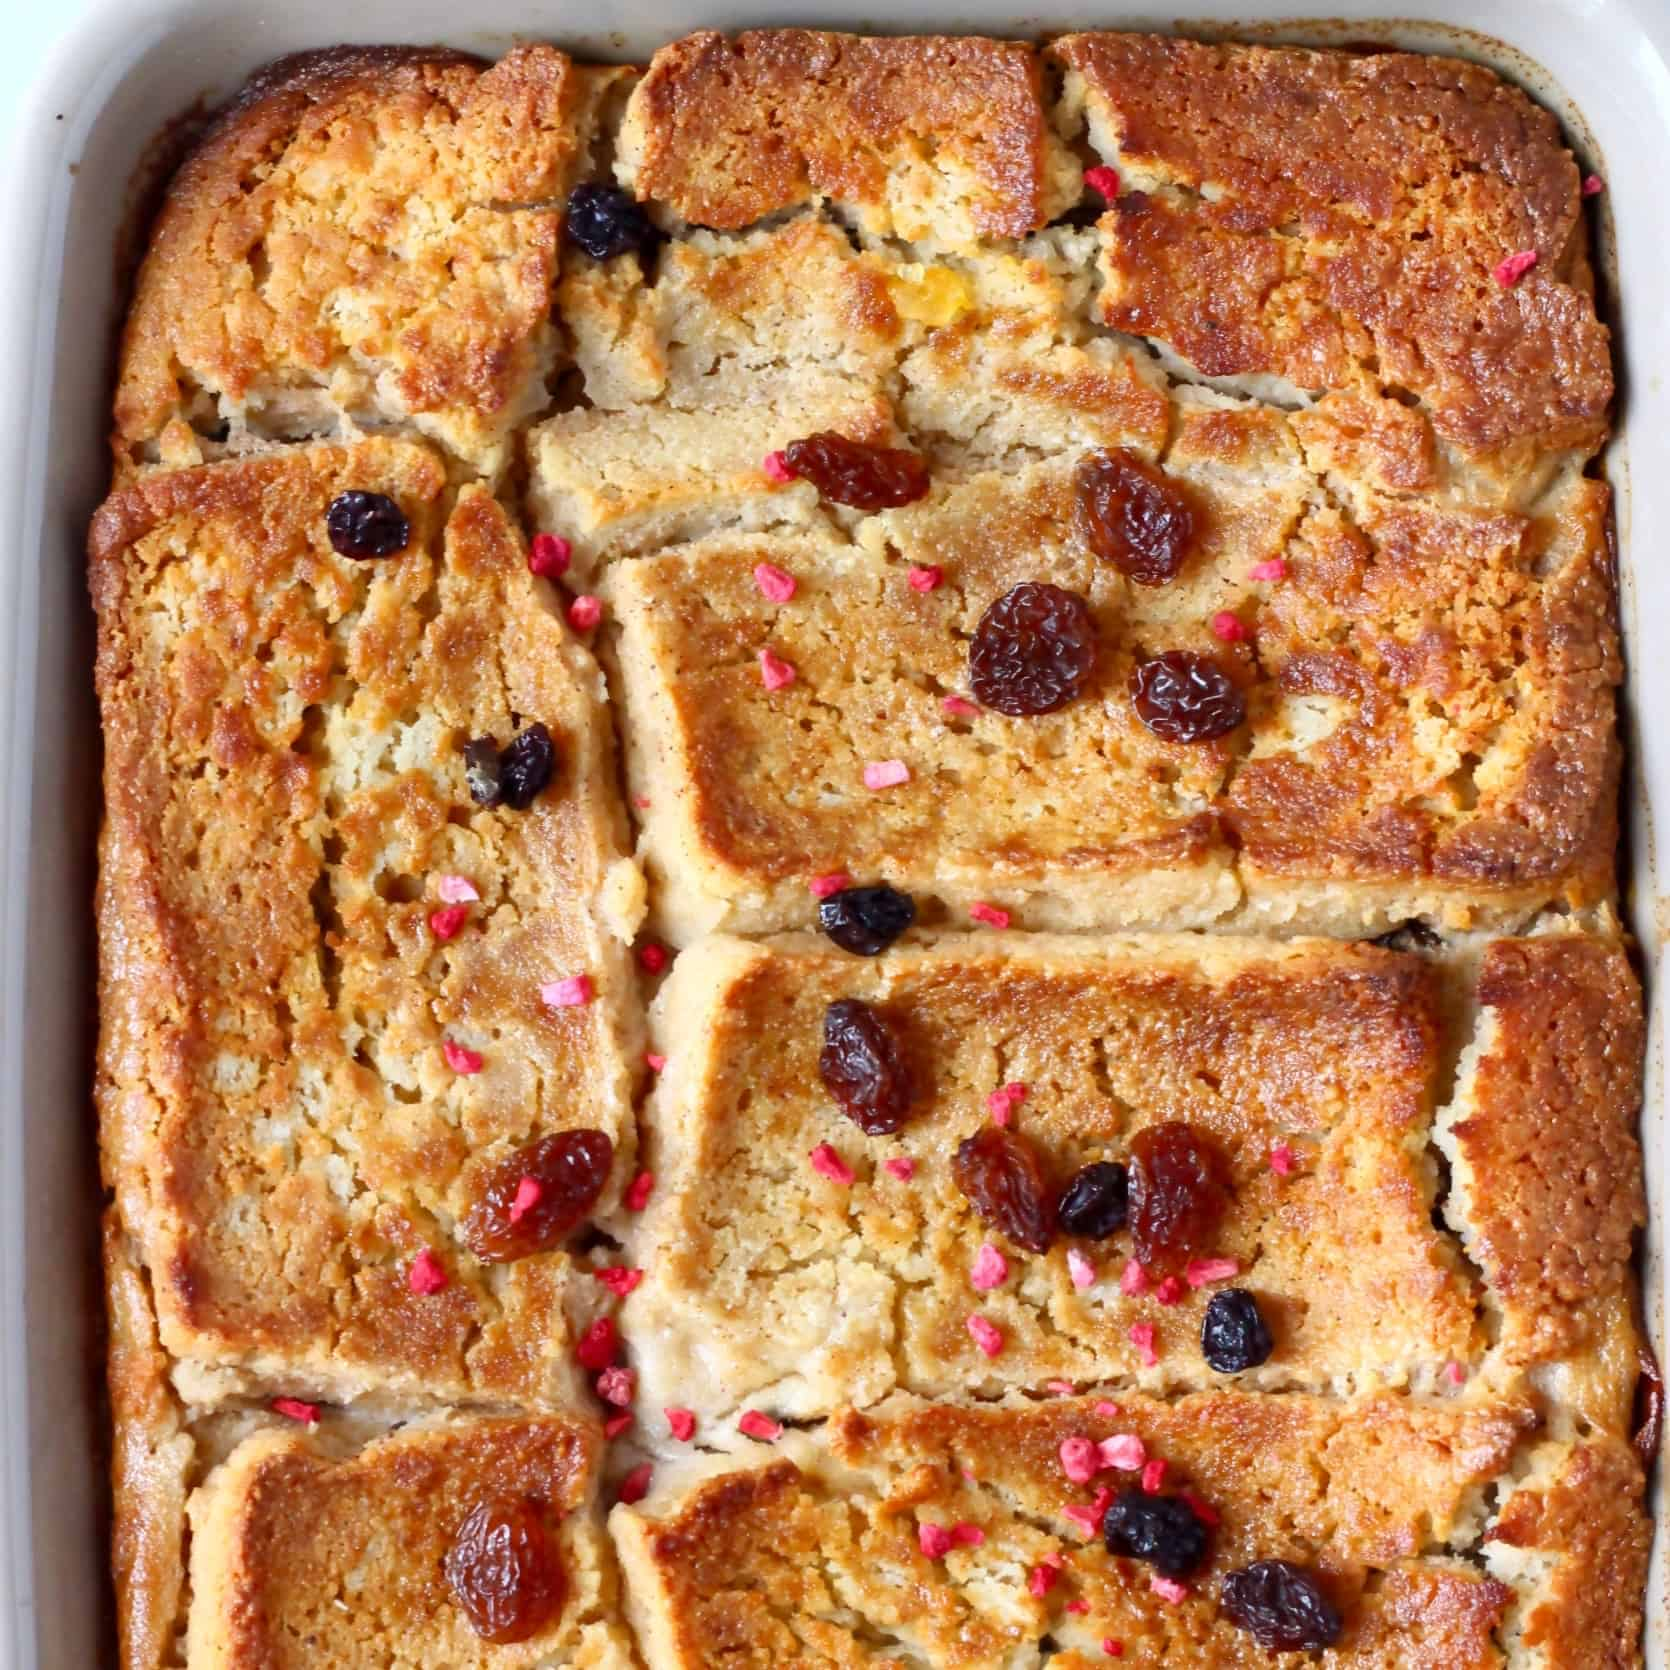 Vegan bread pudding in a grey rectangular baking dish sprinkled with raisins